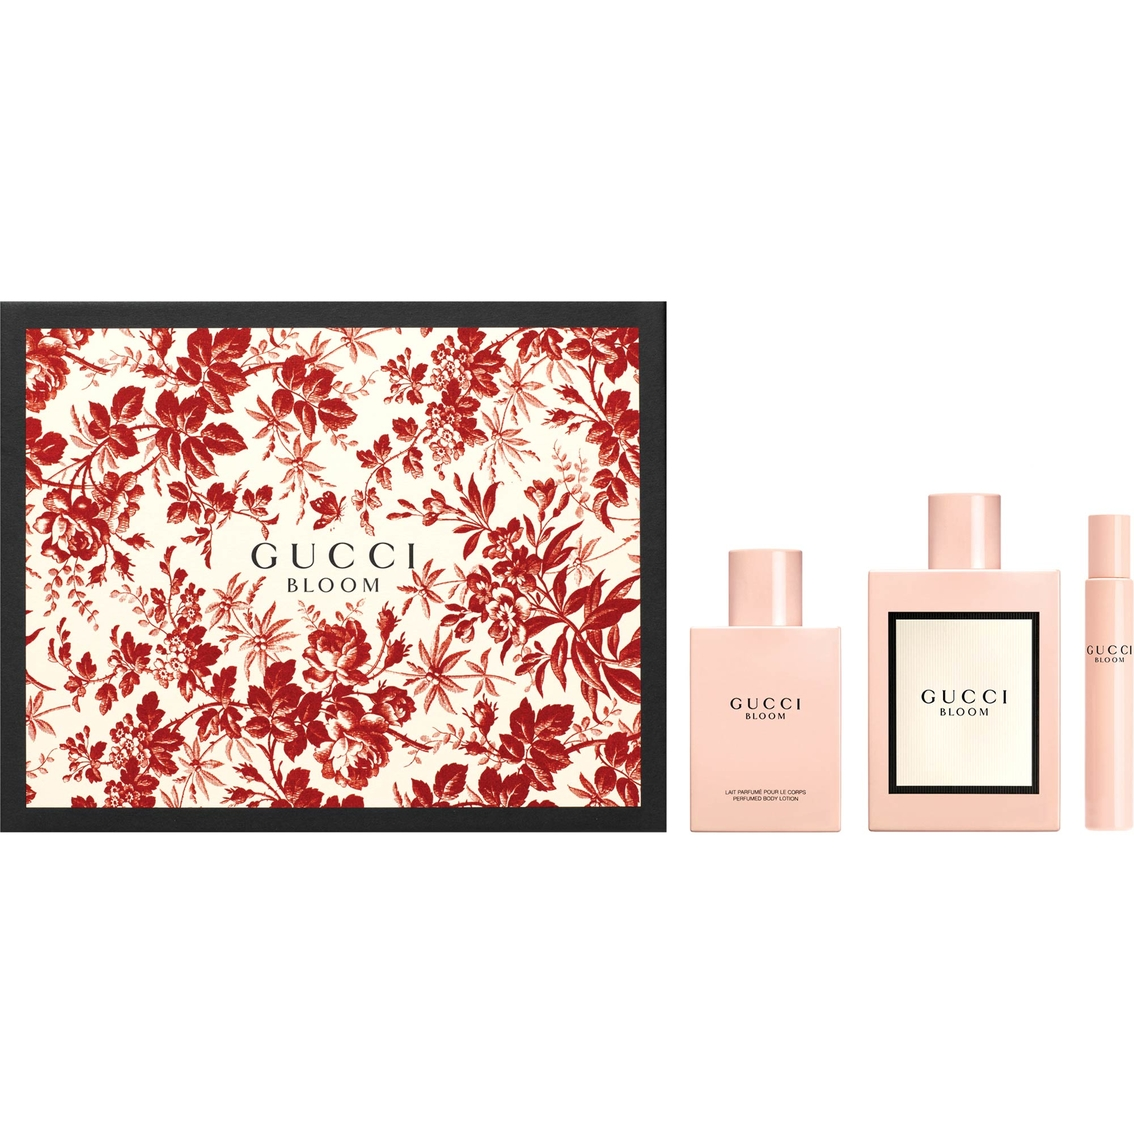 45e43251655 Gucci Bloom Gift Set | Gifts Sets For Her | Beauty & Health | Shop ...